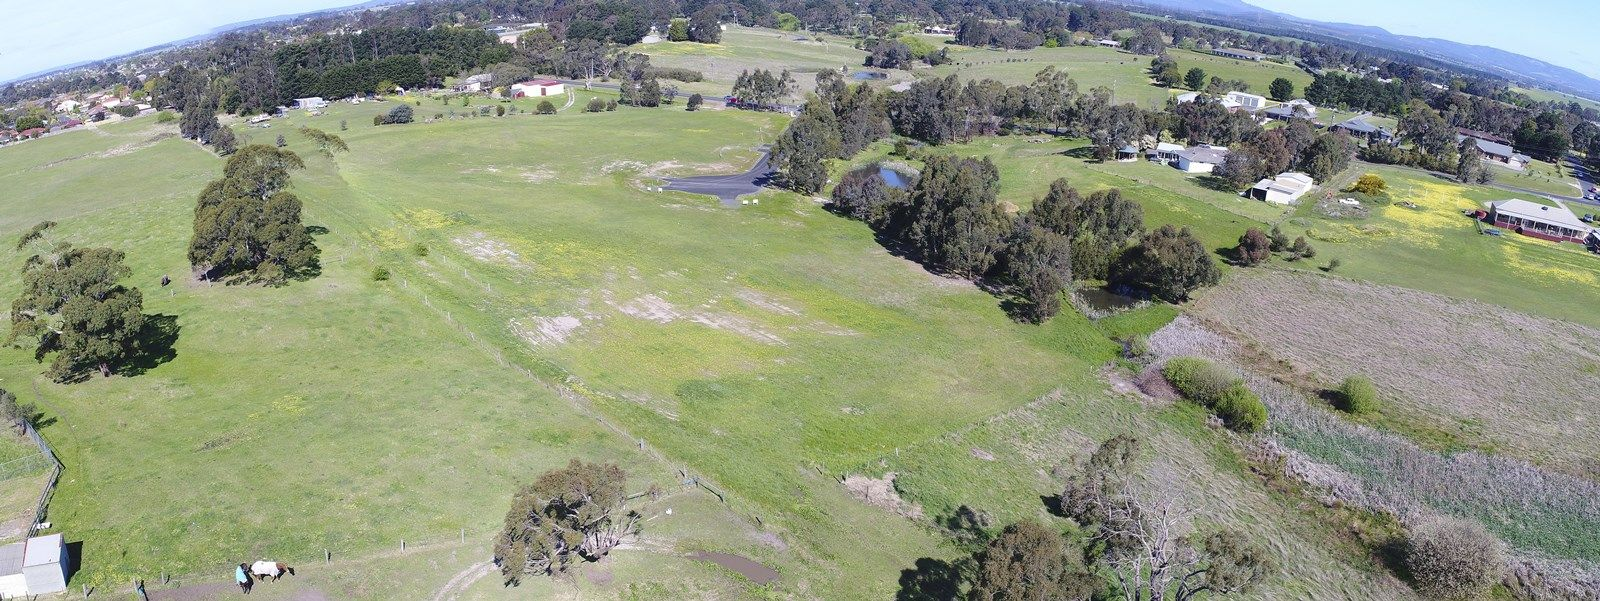 Lot 5 Margie's Place, Traralgon VIC 3844, Image 2